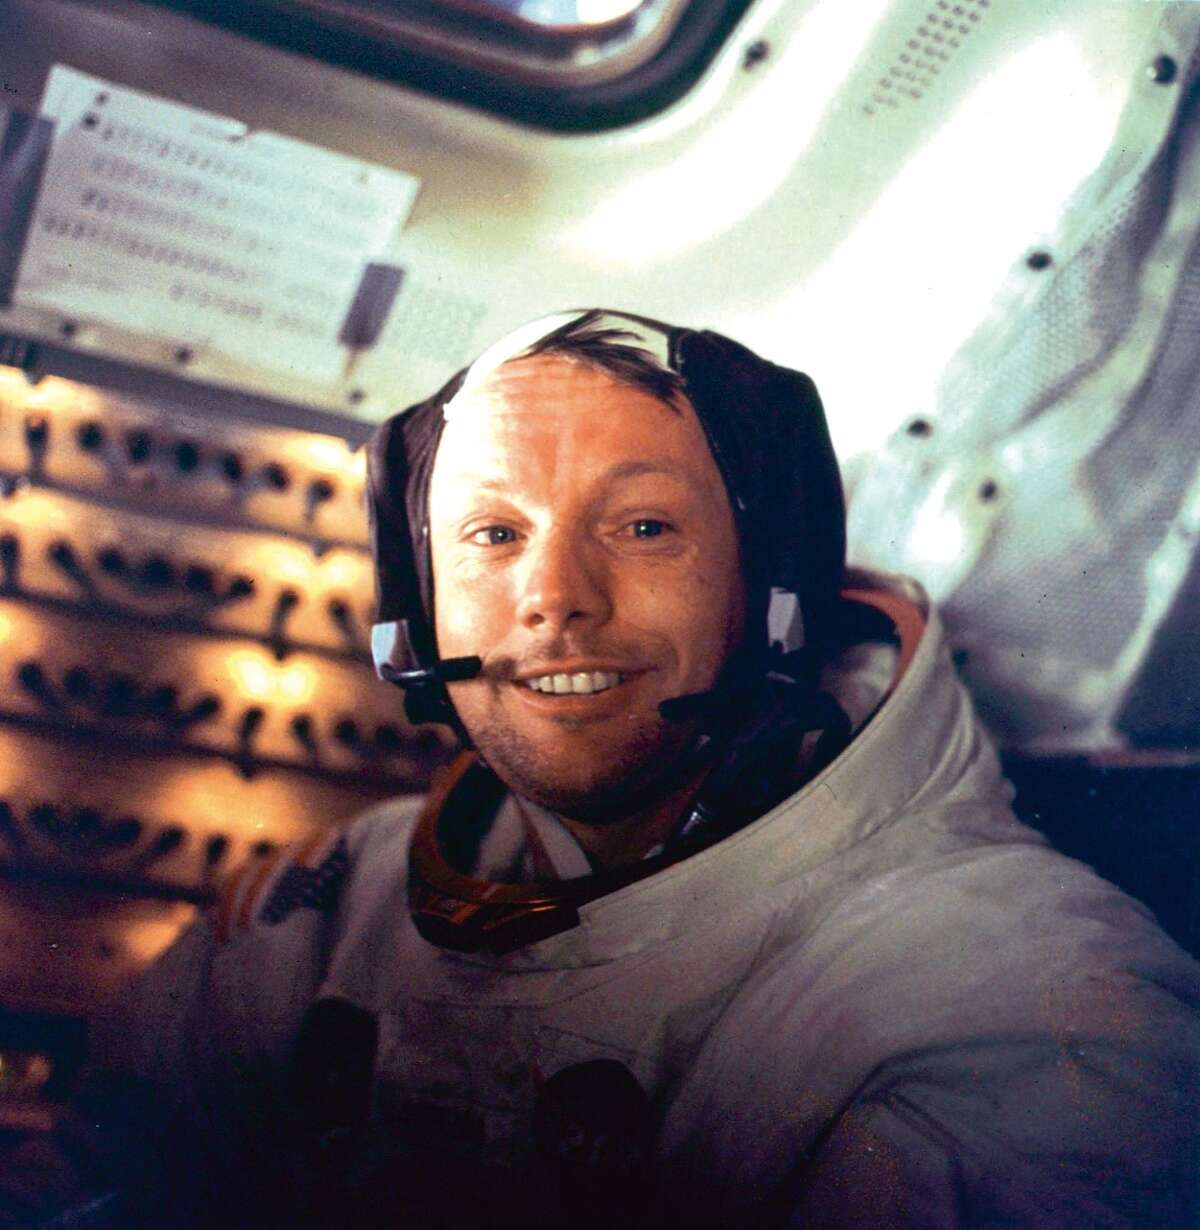 """Apollo 11 space mission US astronaut Neil Armstrong is seen smiling at the camera aboard the lunar module """"Eagle"""" on July 21, 1969 after spending more than 2½ hours on the lunar surface."""